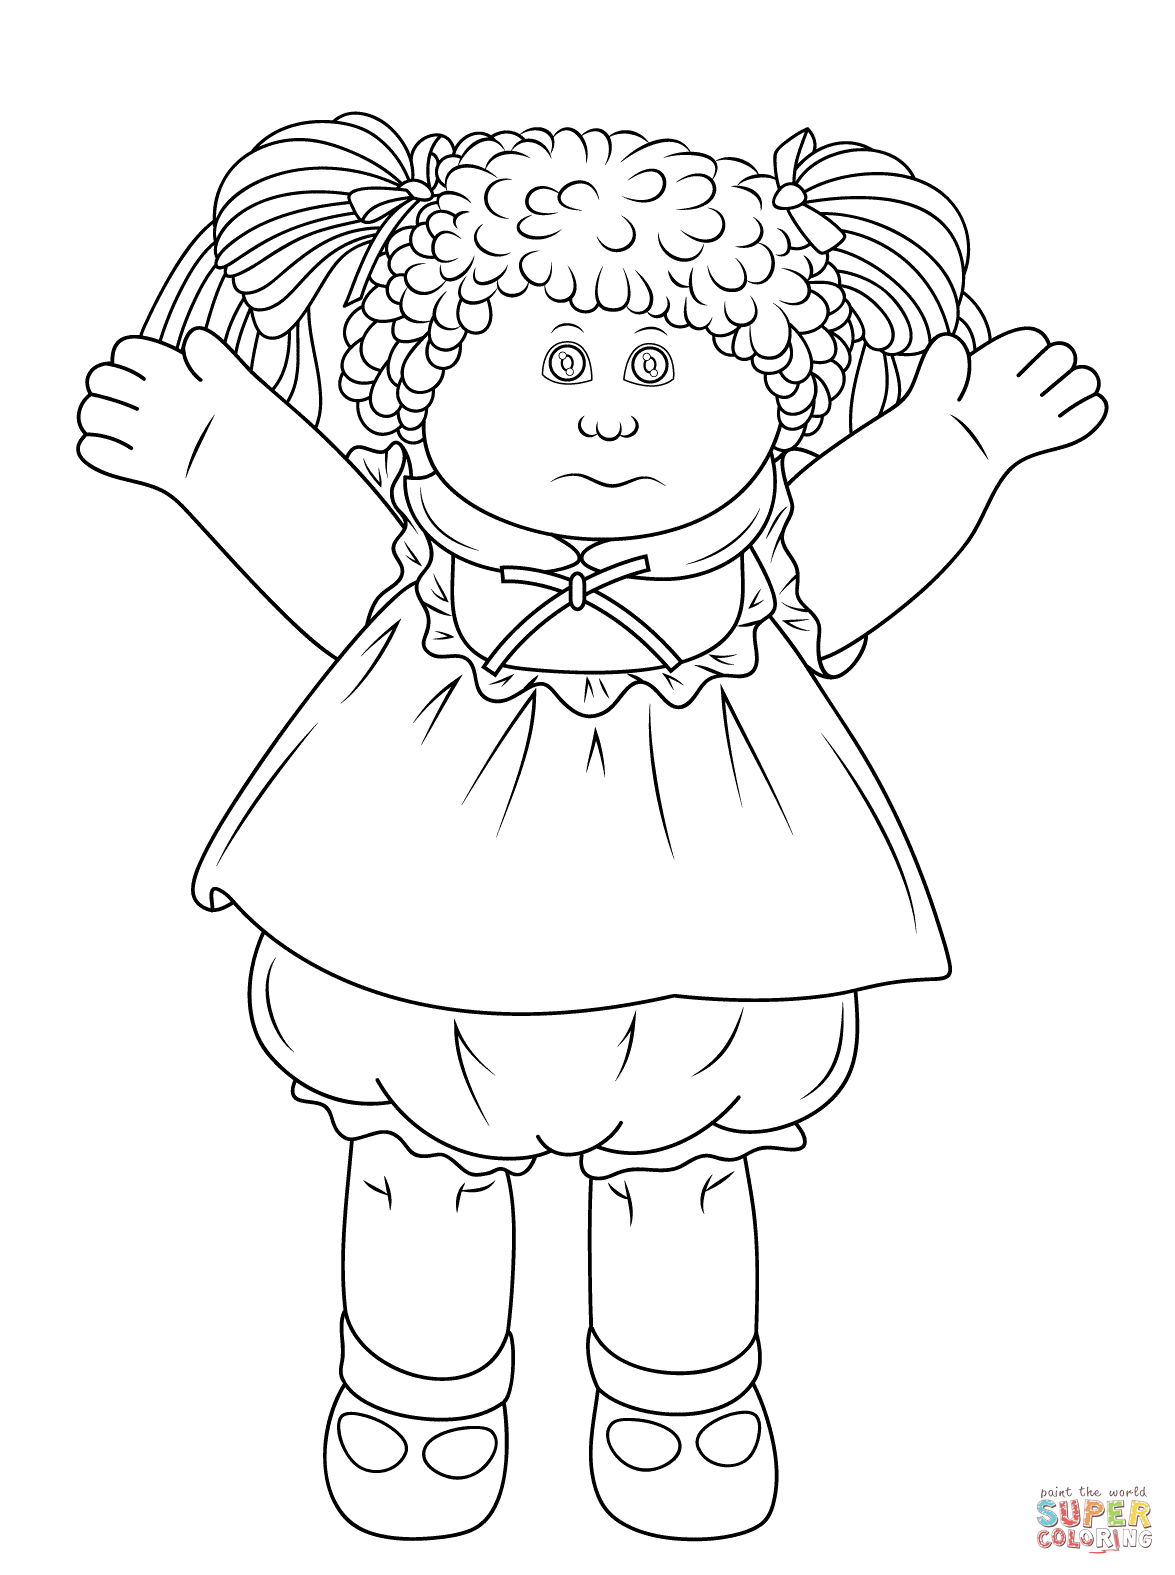 Childrens coloring sheet of a rag doll - Cabbage Patch Doll Coloring Page From Rag Dolls Category Select From 24104 Printable Crafts Of Cartoons Nature Animals Bible And Many More